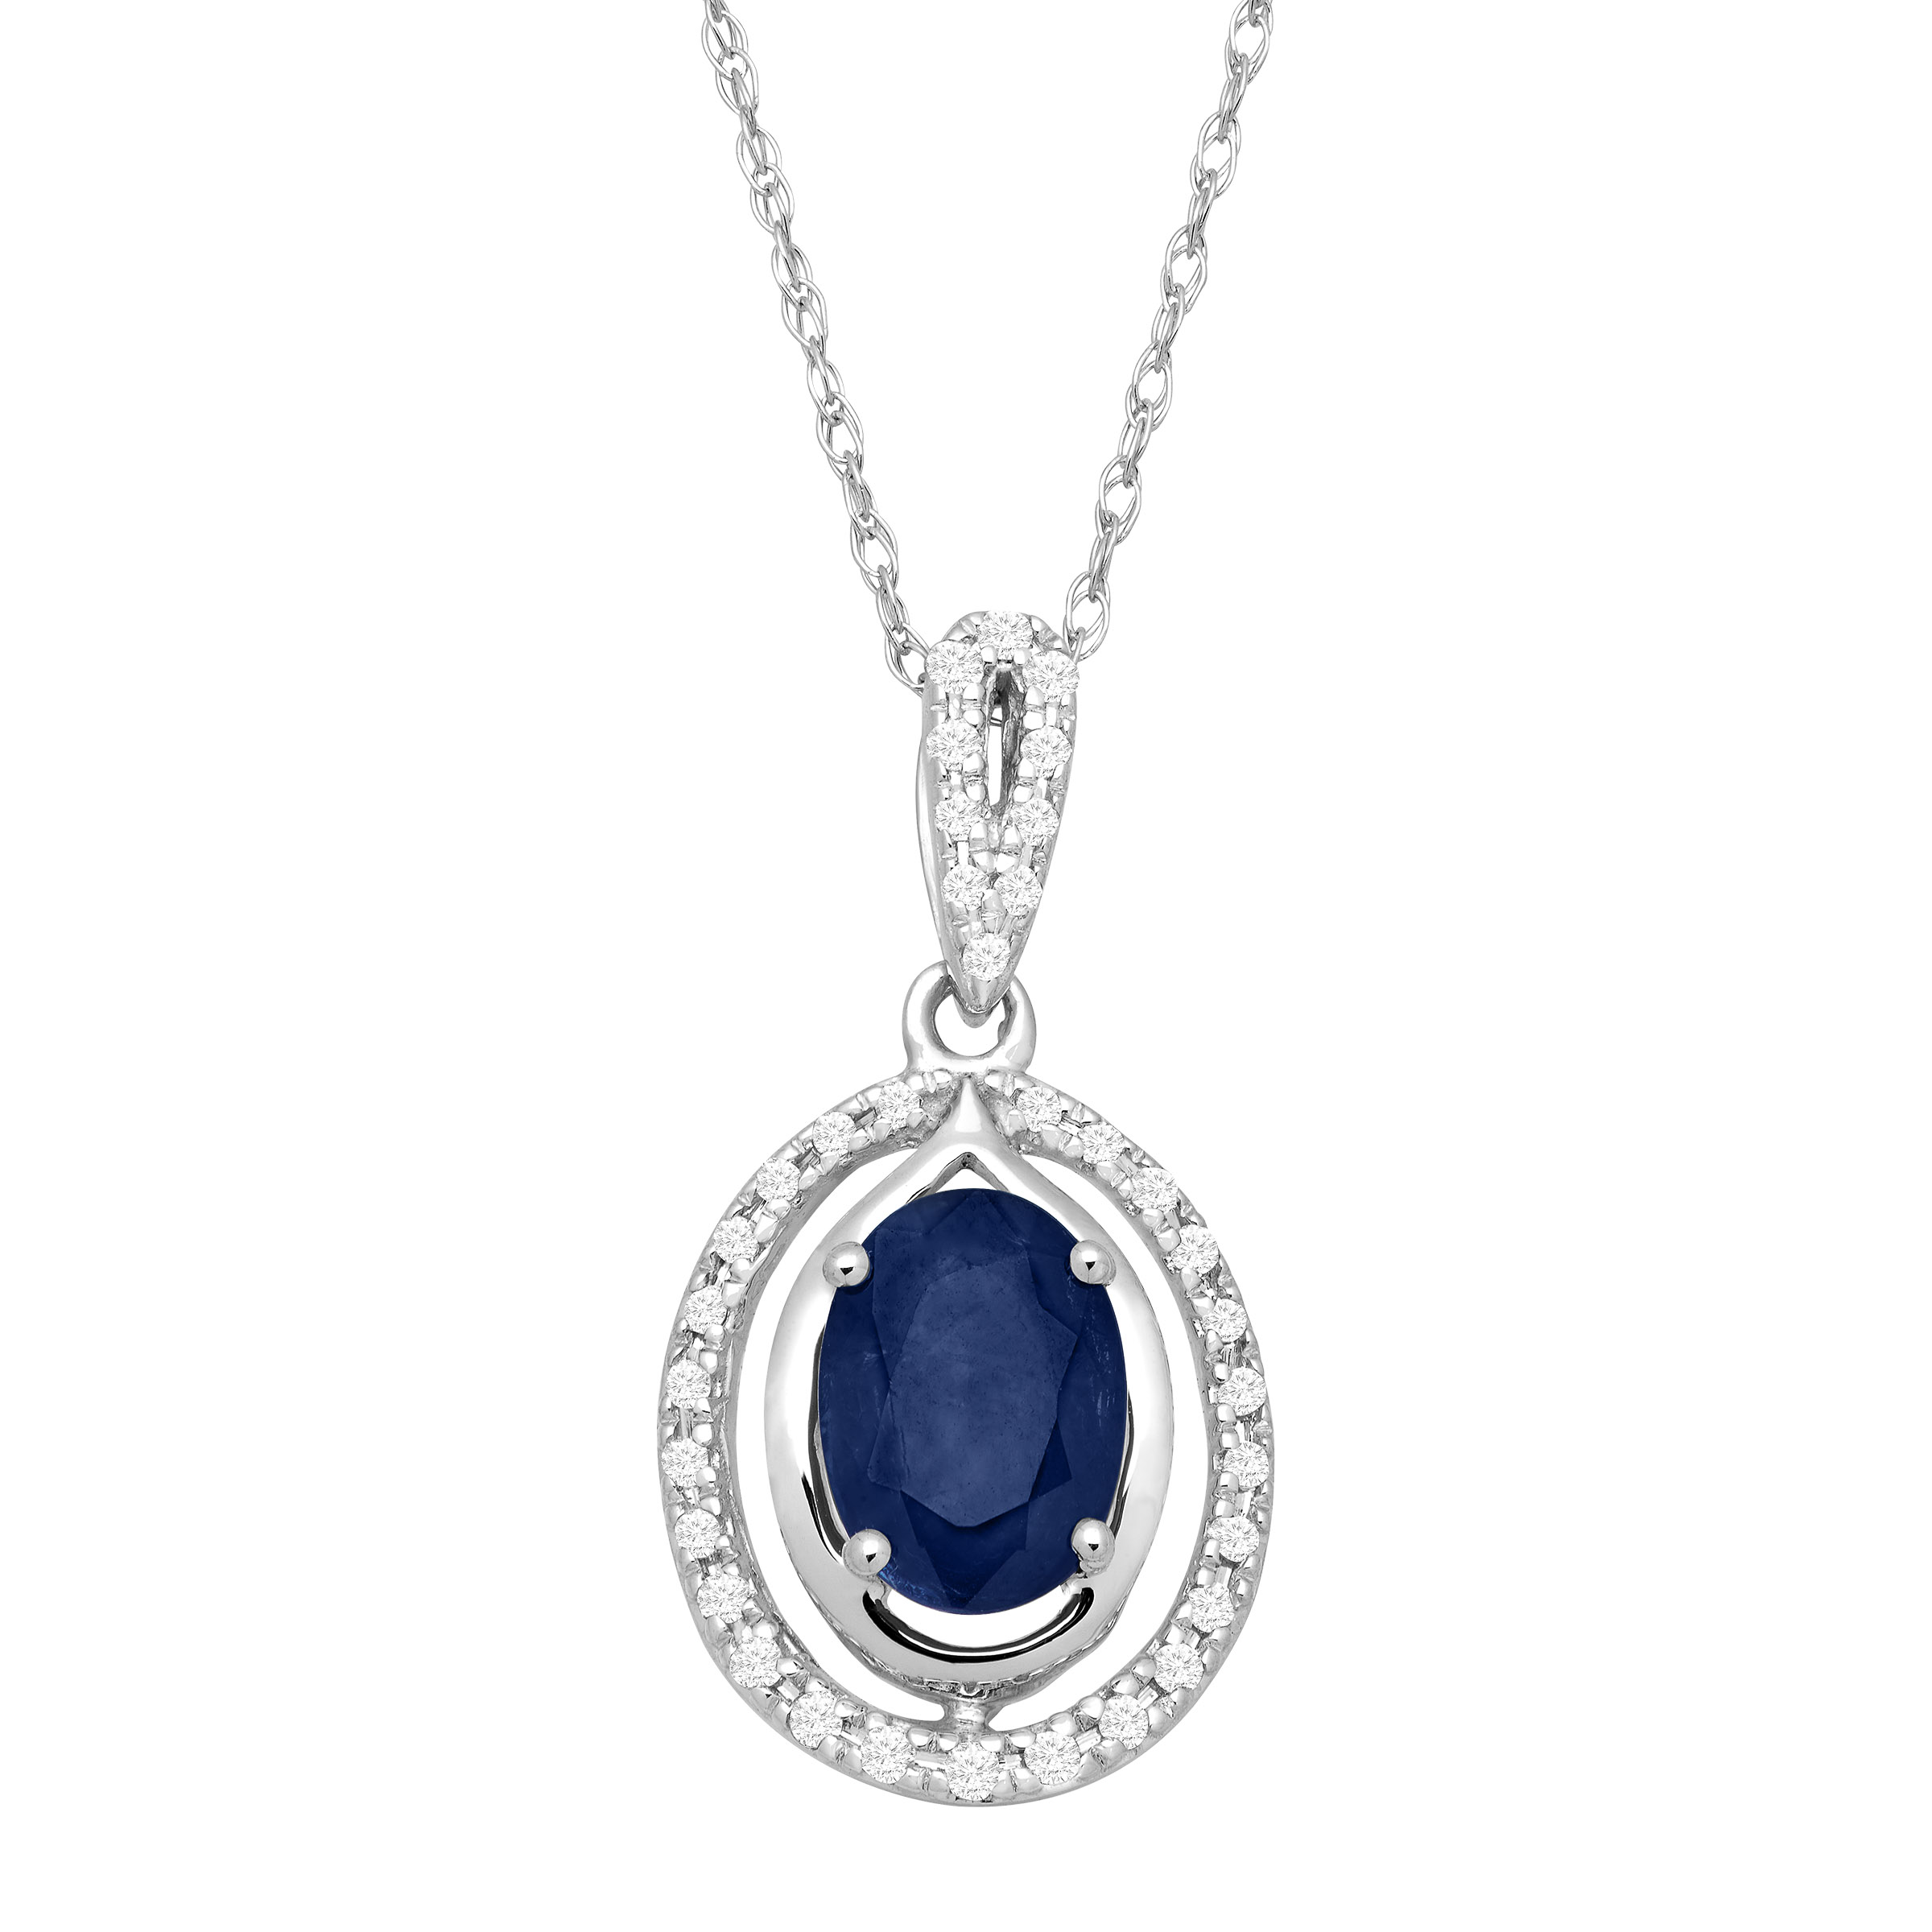 1 ct Natural Sapphire & 1 10 ct Diamond Oval Pendant Necklace in 10kt White Gold by Richline Group